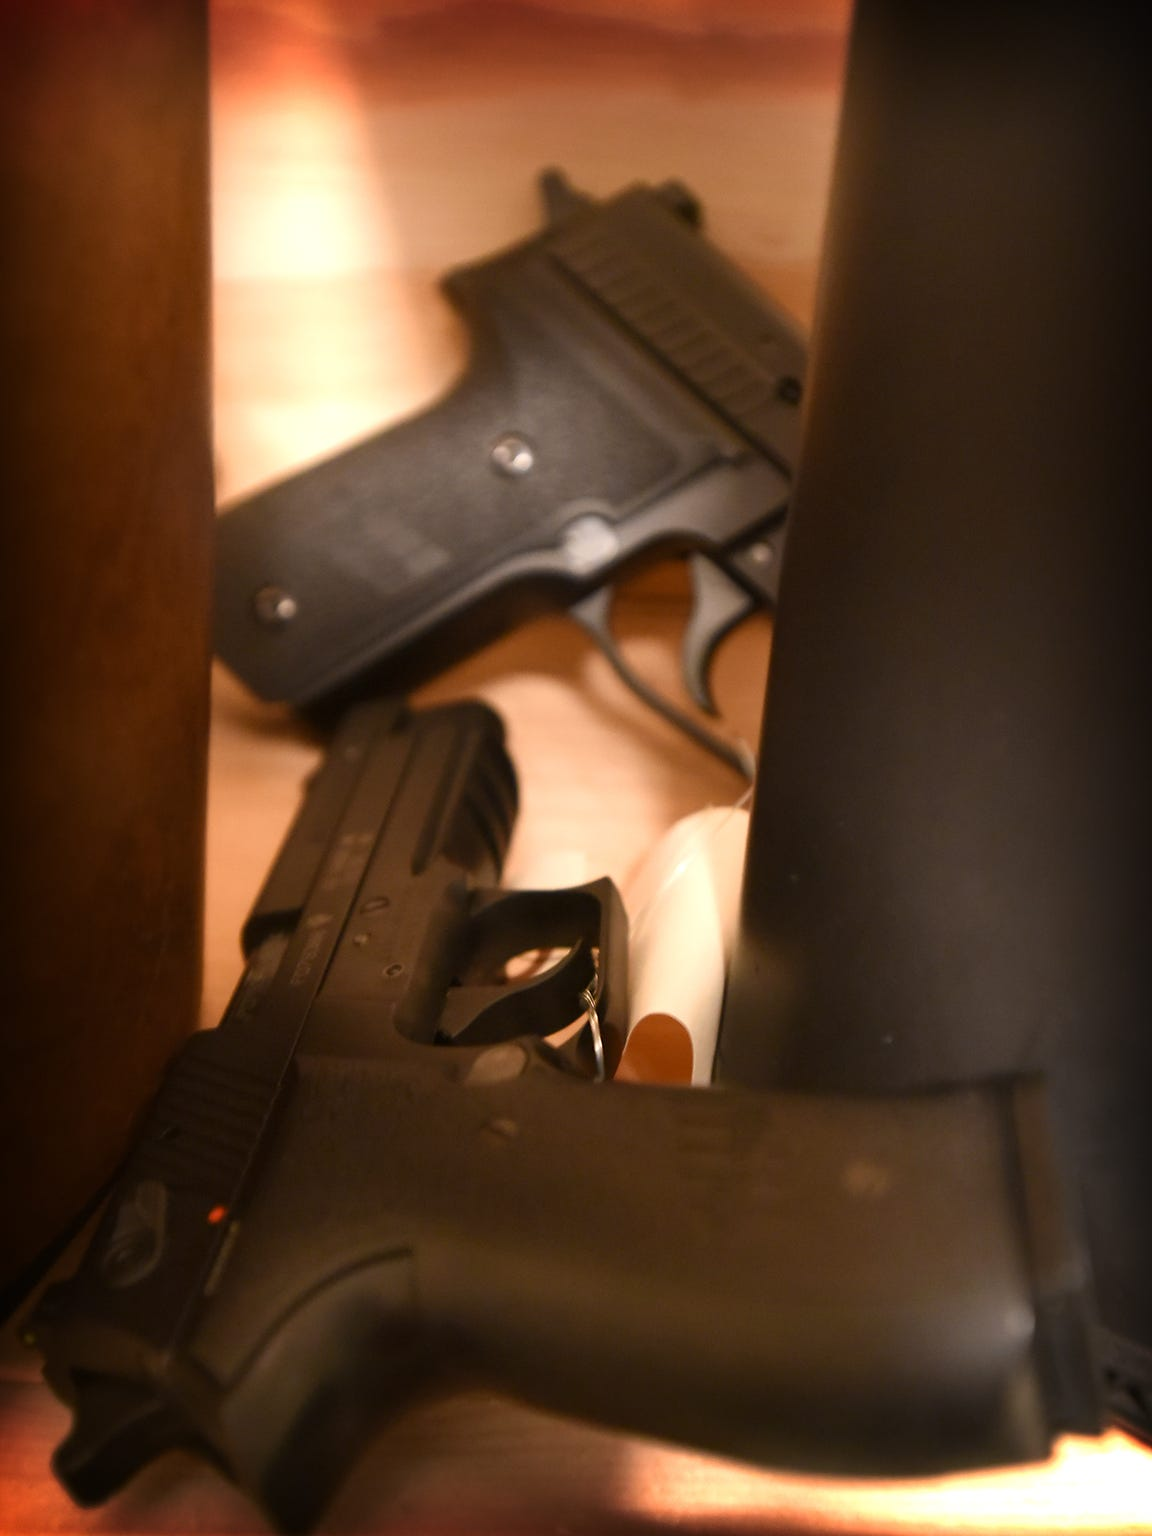 The Lebanon County Sheriff's Office confiscated these firearms from seven defendants who were served a Protection From Abuse order, and stores them in the courthouse. The defendants can only get the firearms back if the PFA expires and they have no other criminal conviction forbidding them from owning the weapons.